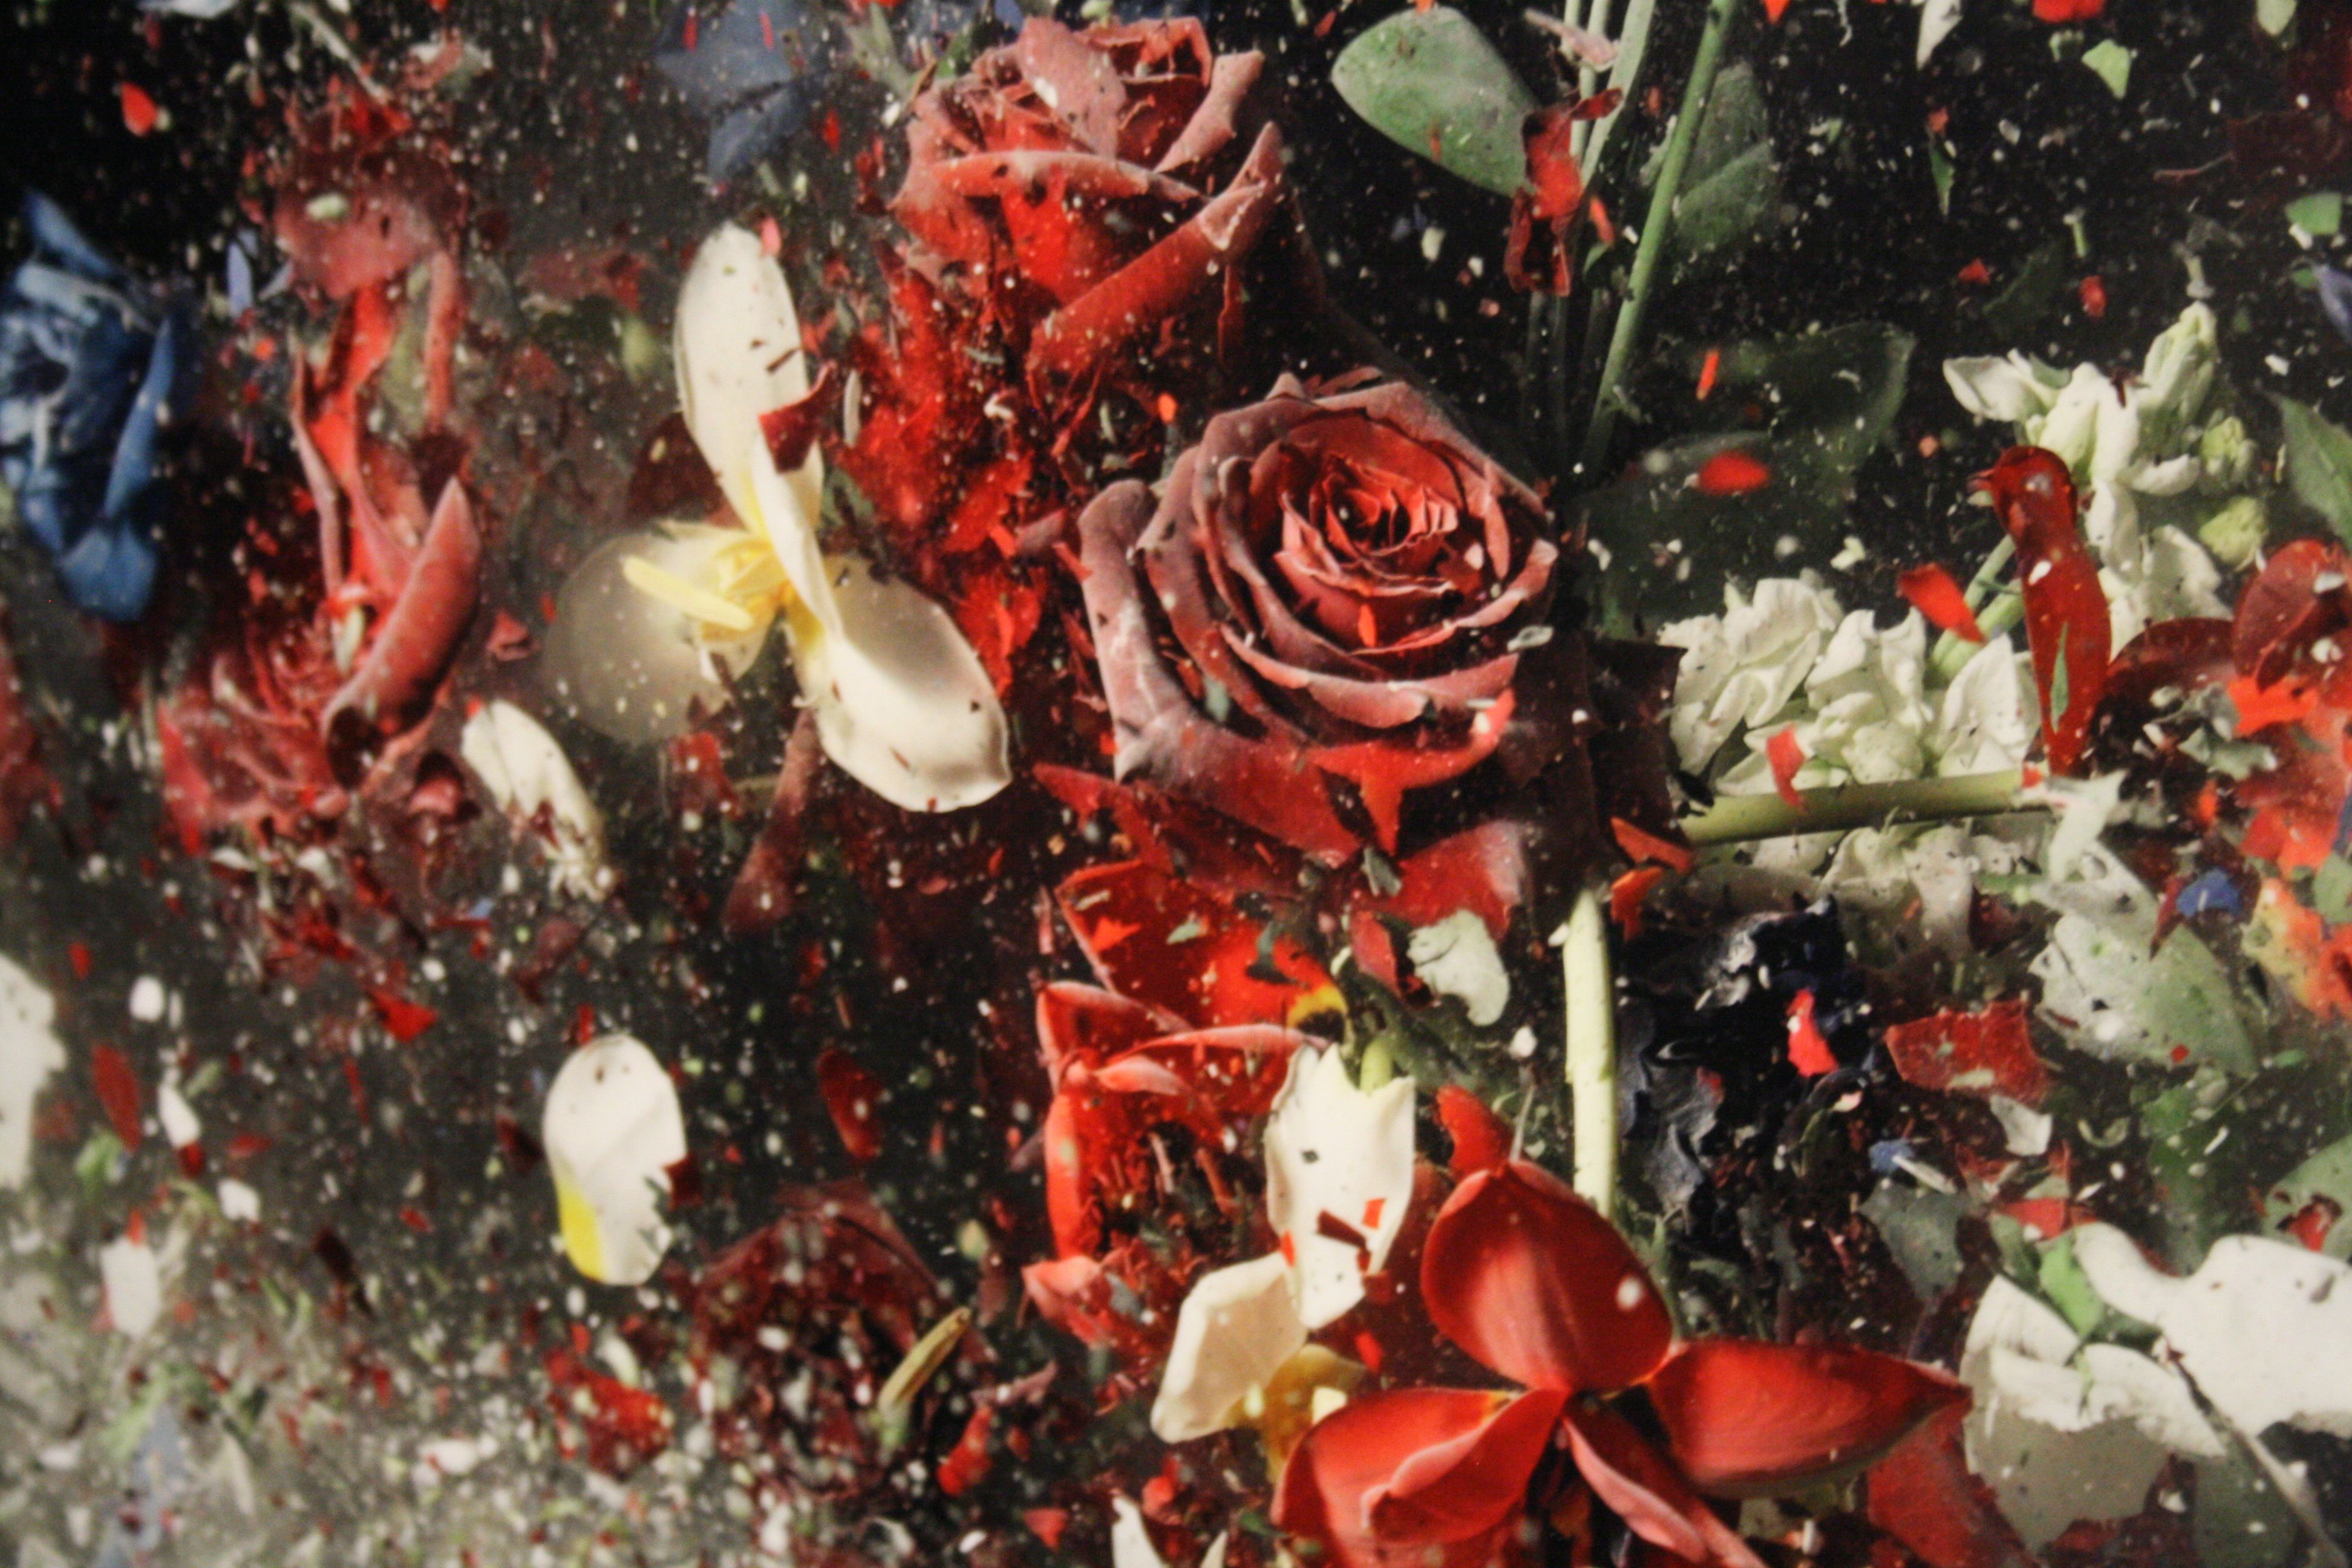 Ori Gersht - just discovered this fantastic  photographer.